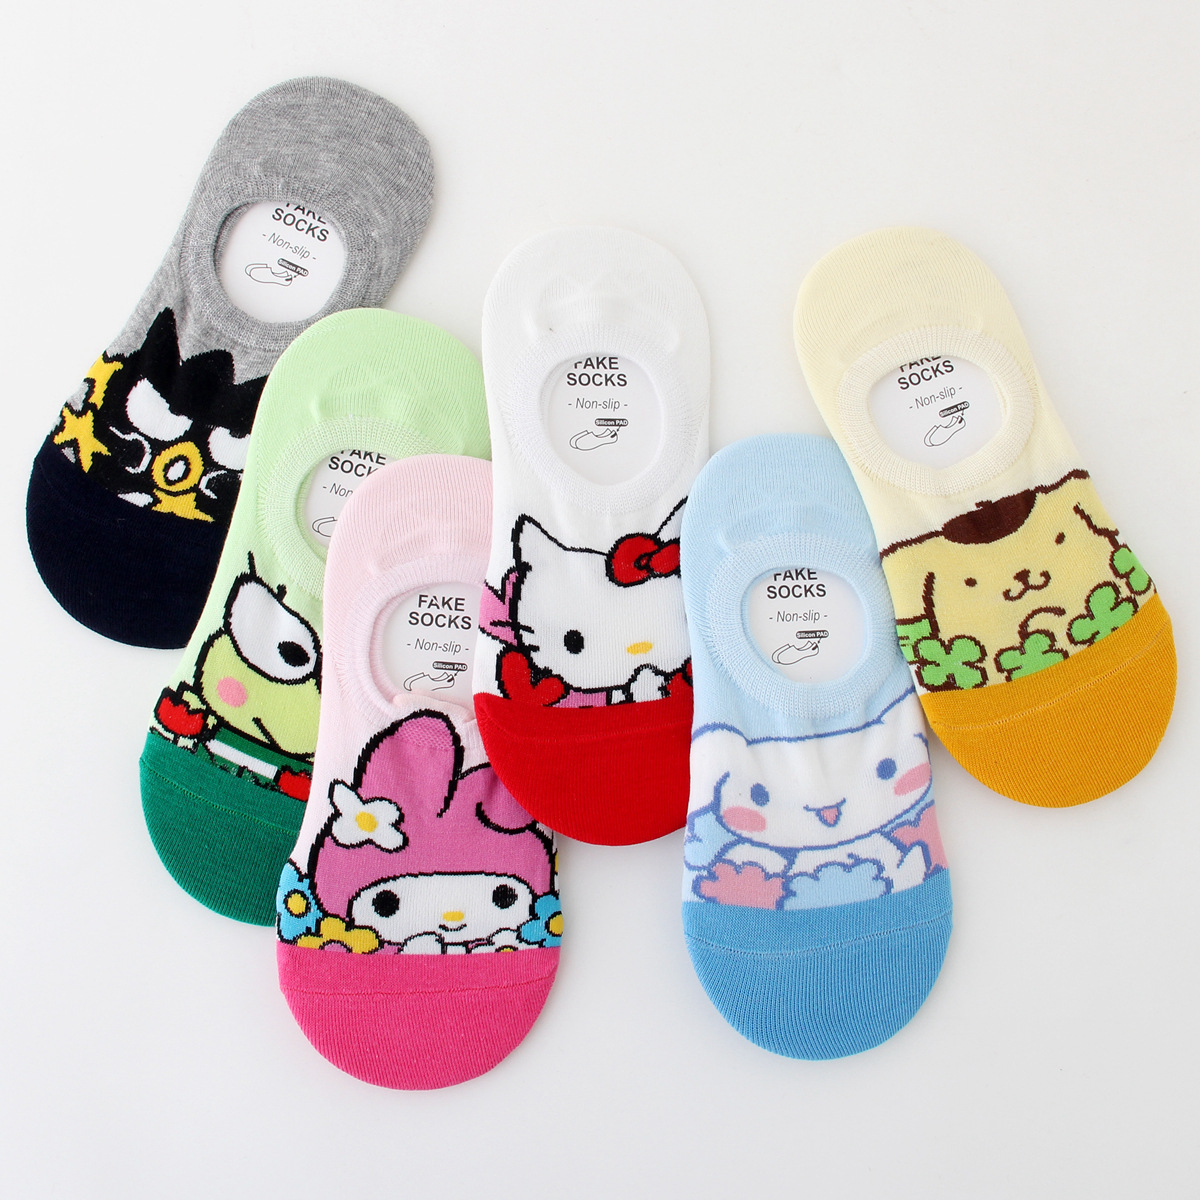 Summer Funny Animals Socks Women Cute Kawaii Slippers Socks Boat Socks Creative Cartoon No-Show Cotton Short Invisible Moomin